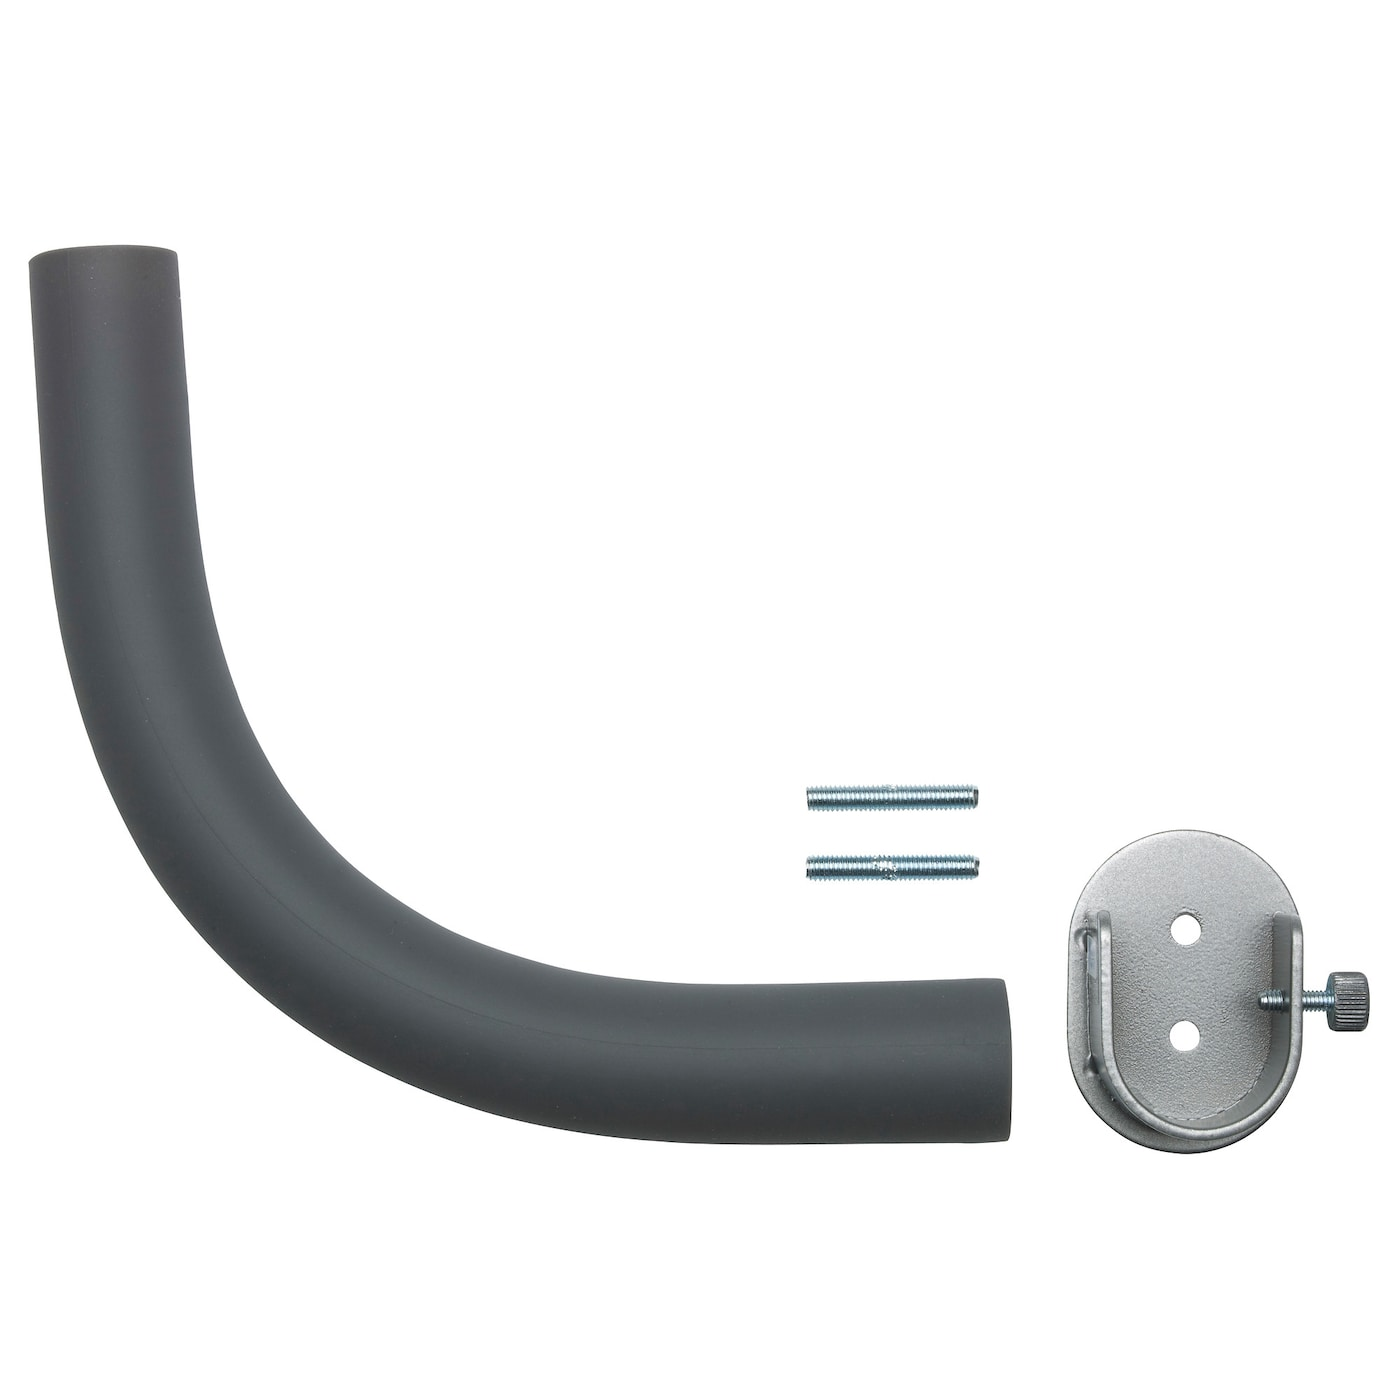 IKEA HUGAD curtain rod corner connector